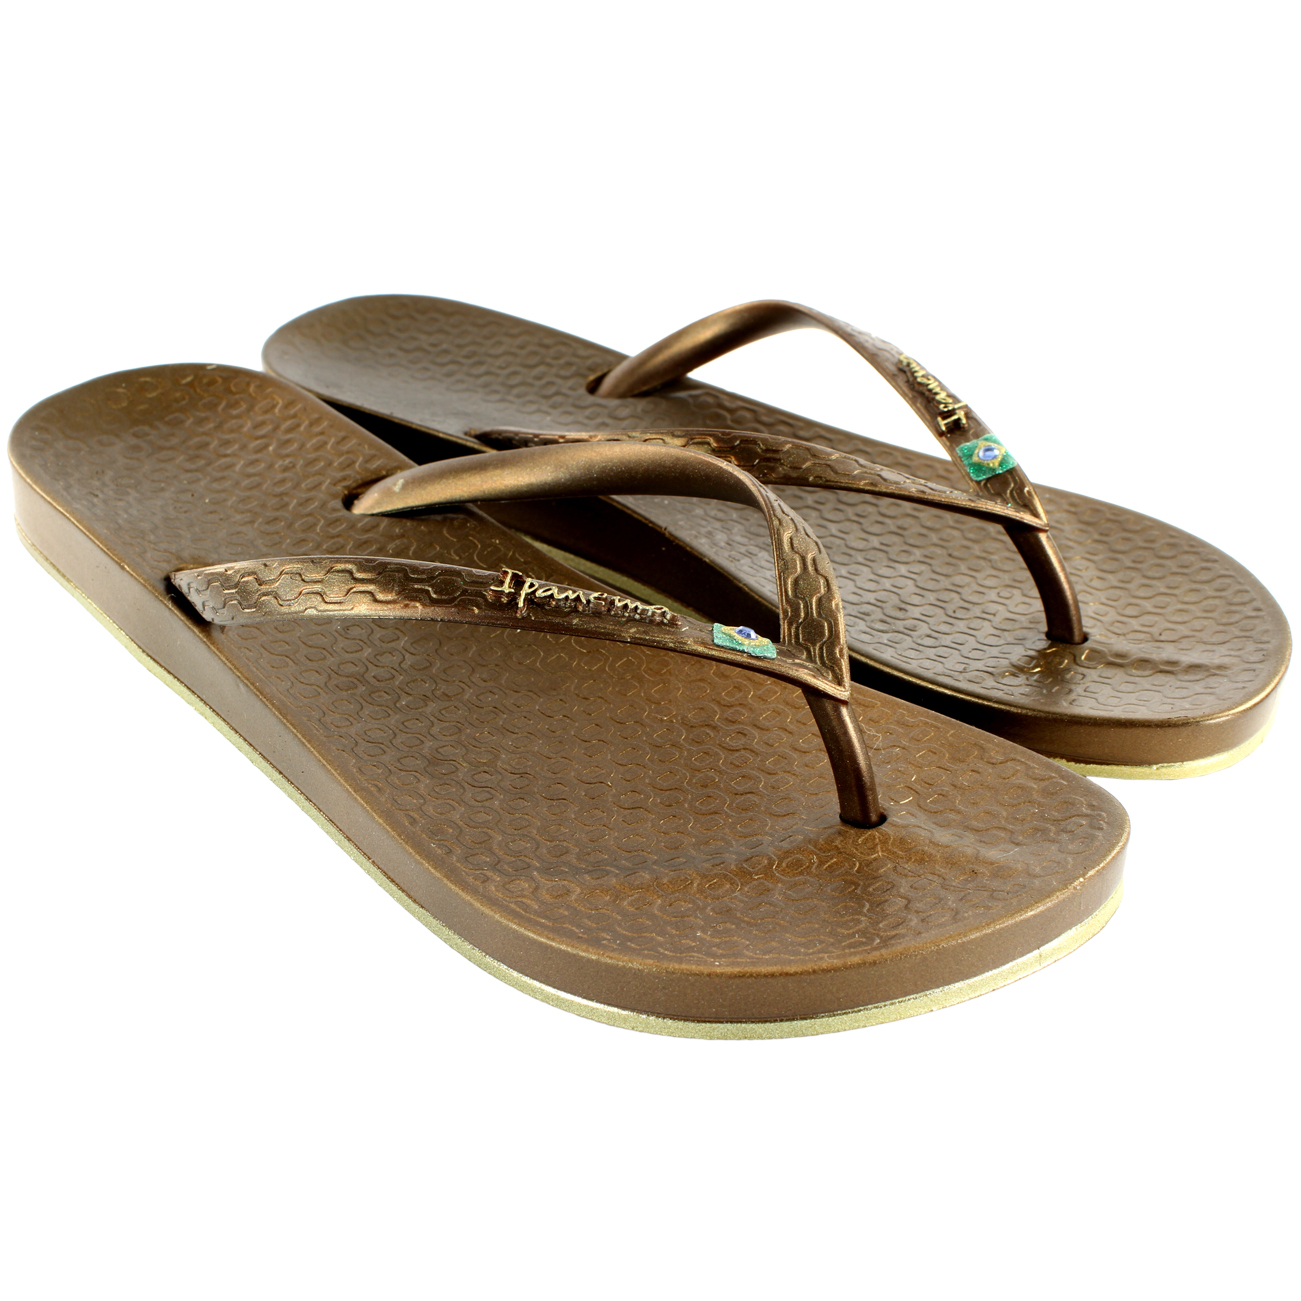 Find FitFlop women's shoes at ShopStyle. Shop the latest collection of FitFlop 31,+ followers on Twitter.